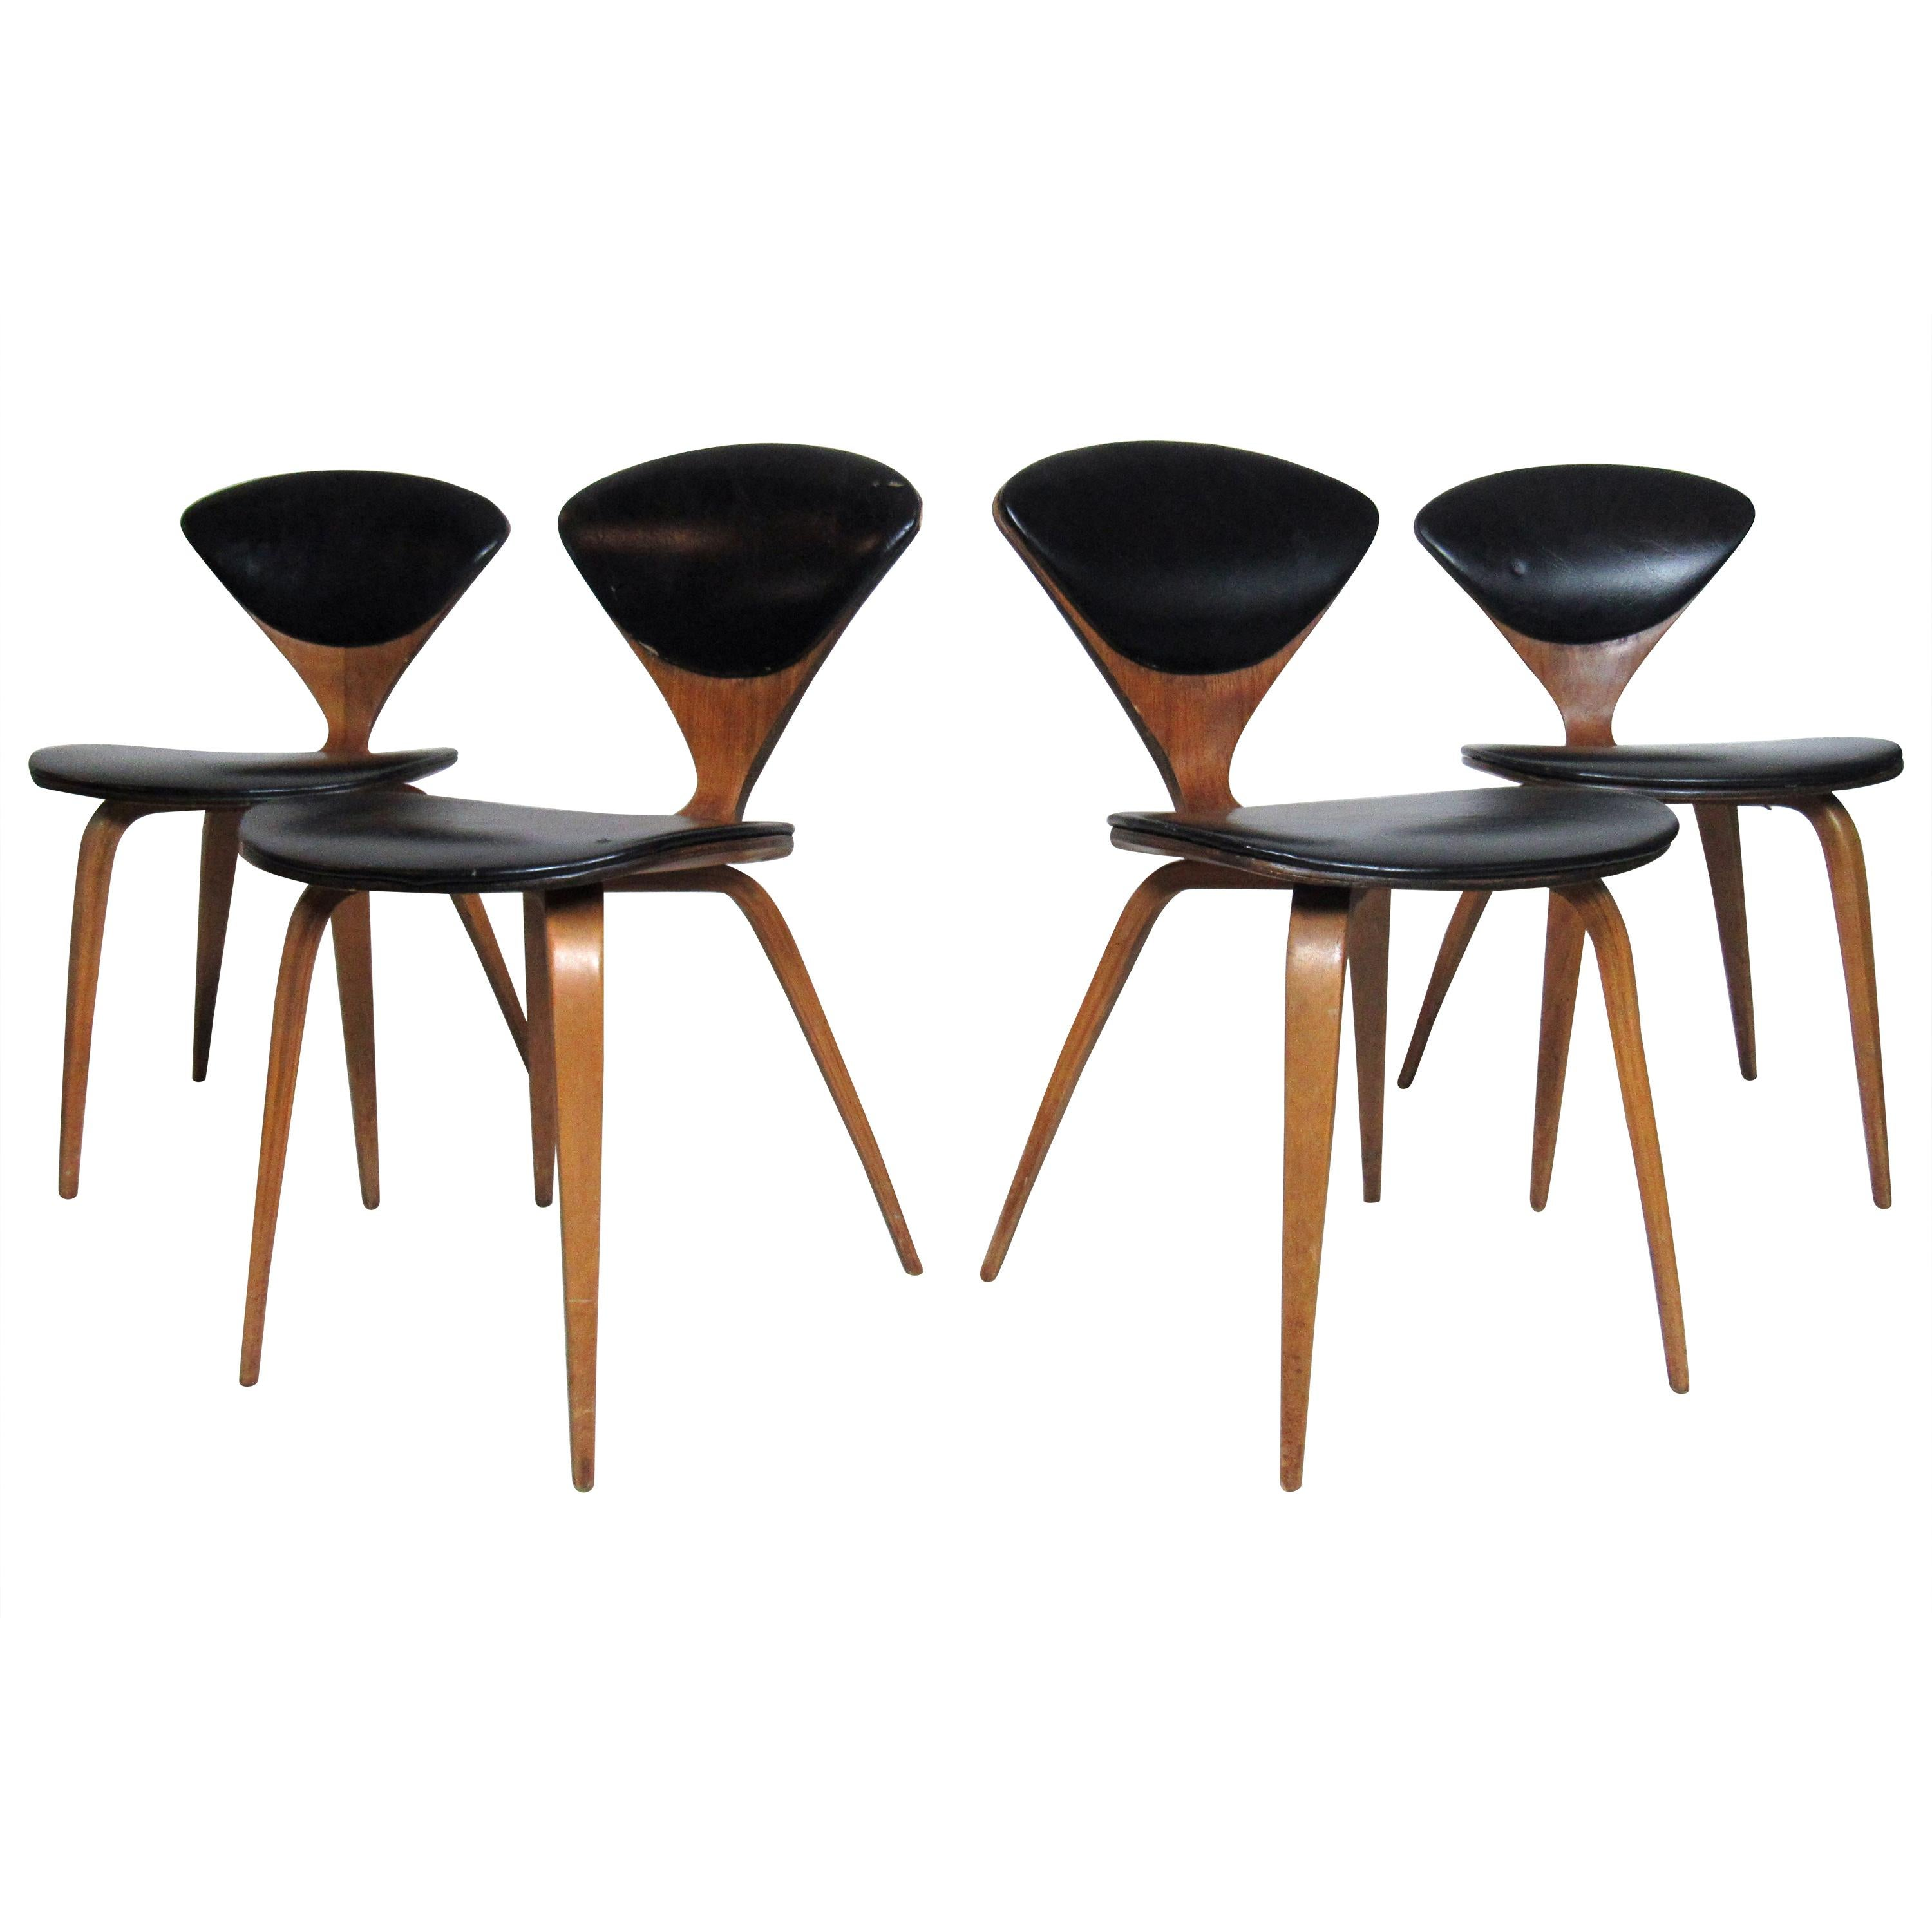 Set of Vintage Modern Norman Cherner Chairs